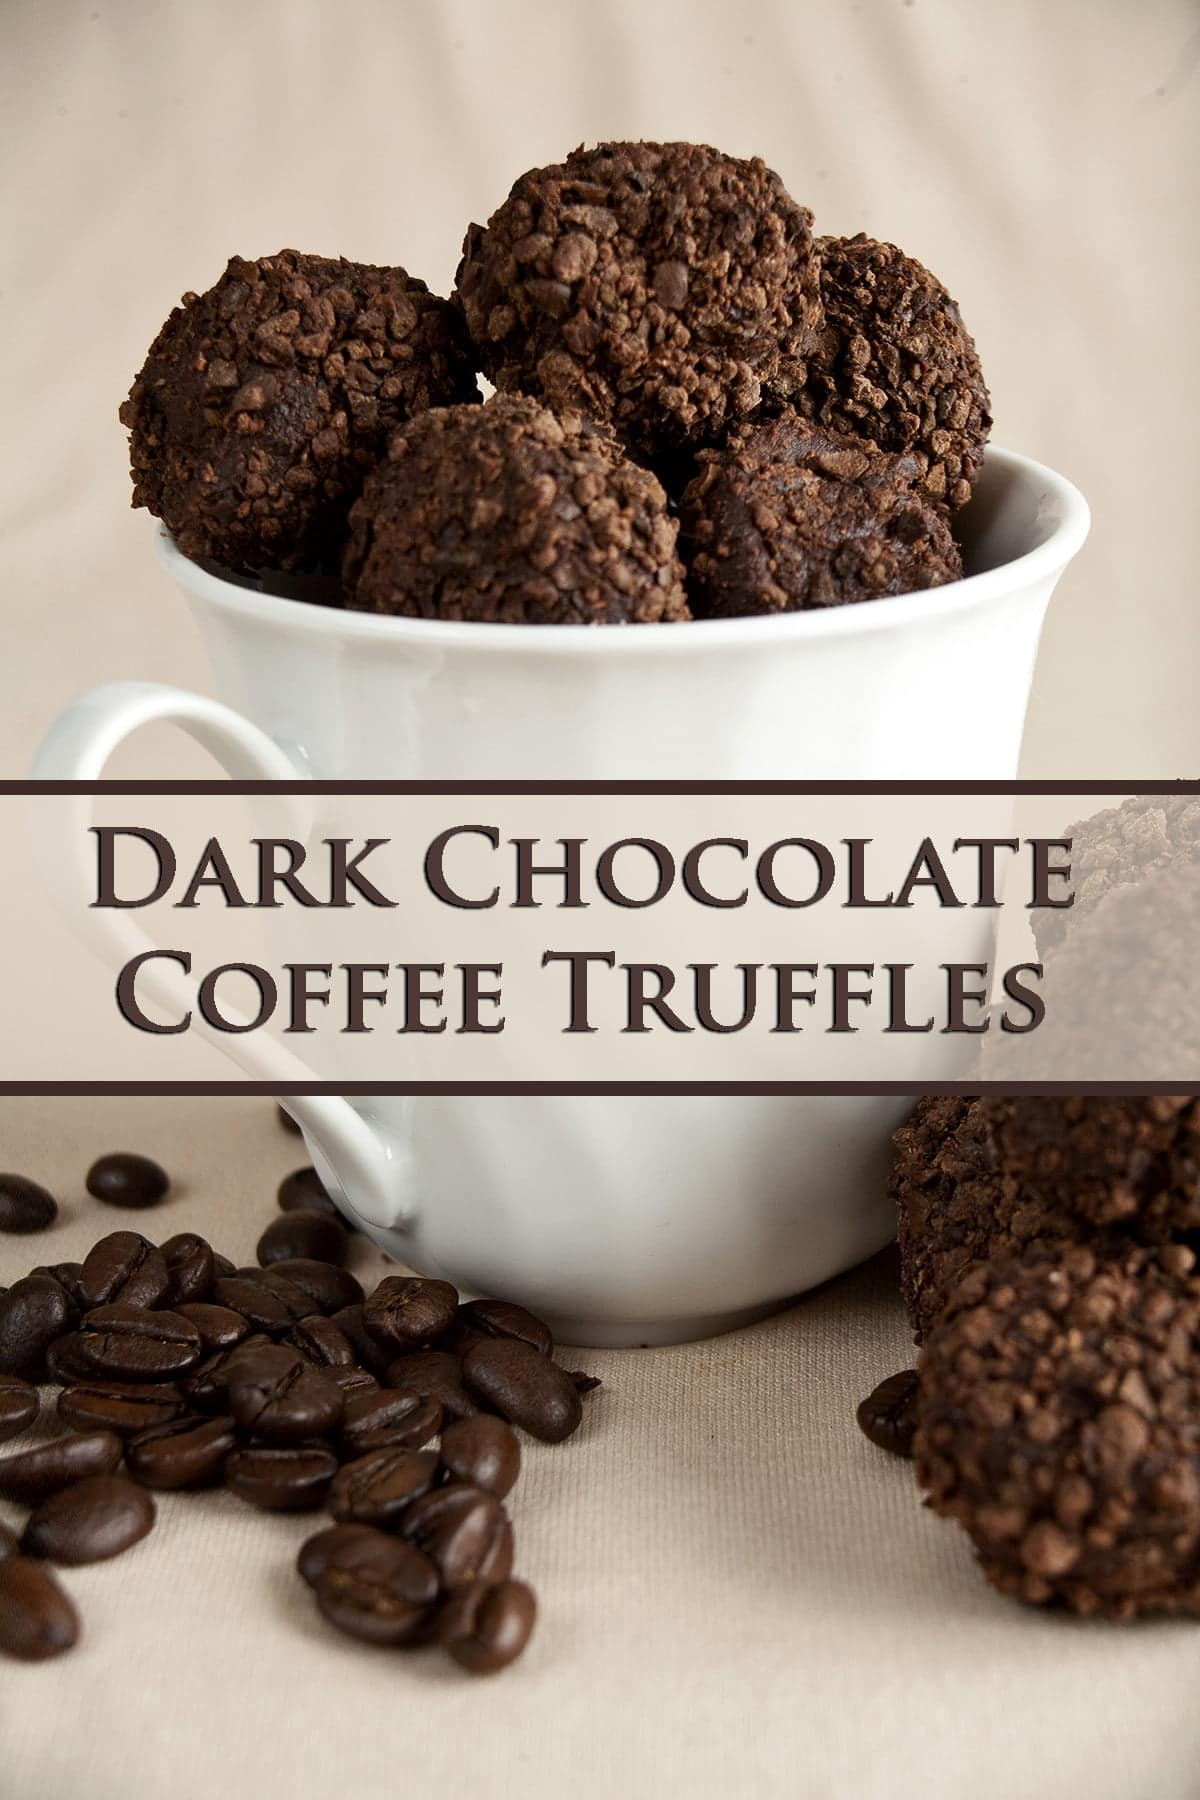 Dark chocolate truffles - coated in smashed coffee beans - fill a white coffee mug. There are stray dark chocolate coffee truffles and coffee beans at the base of the mug.